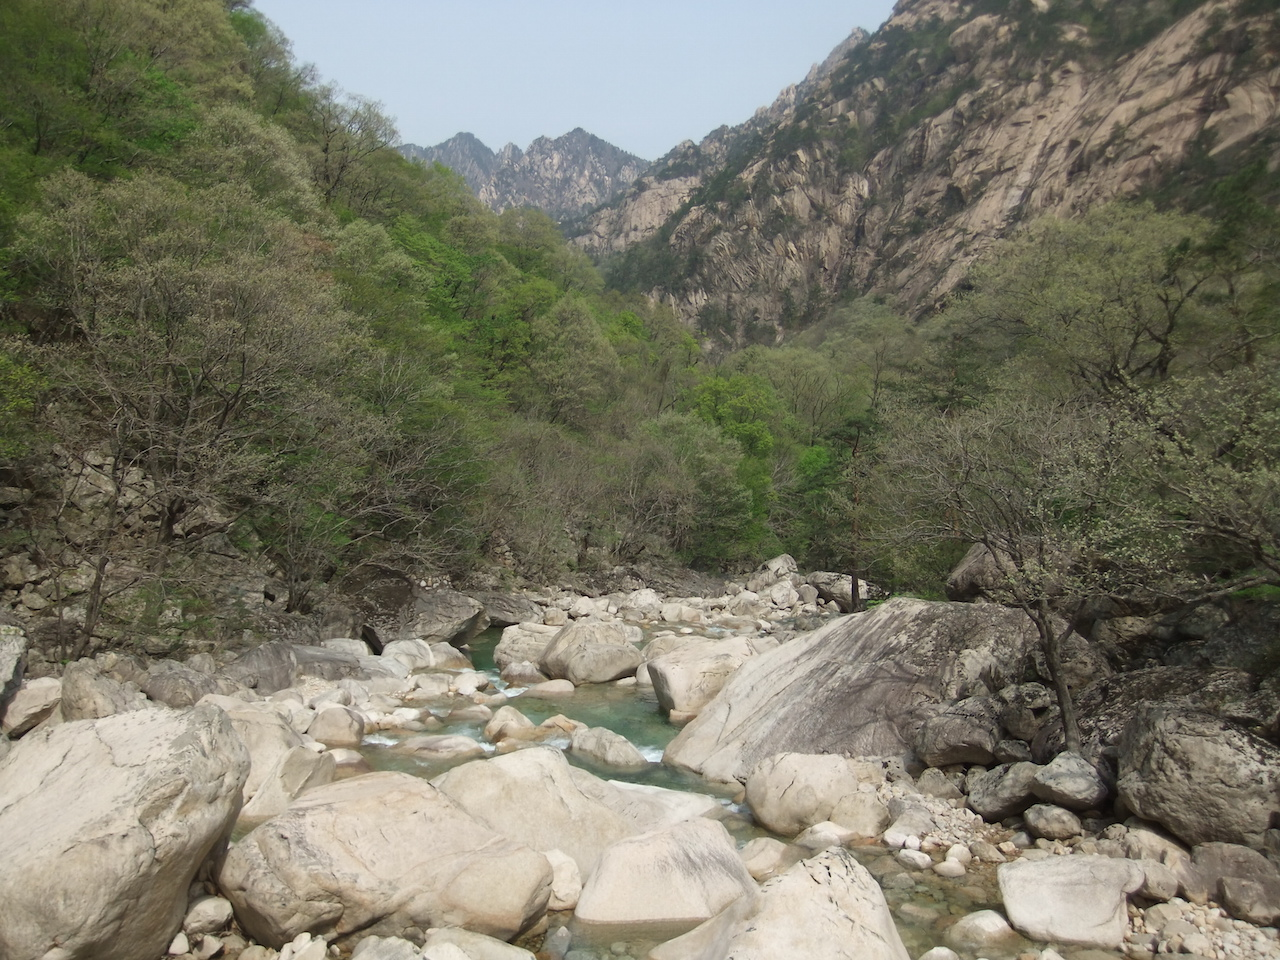 29 april 2012 Kumgang – Wanson